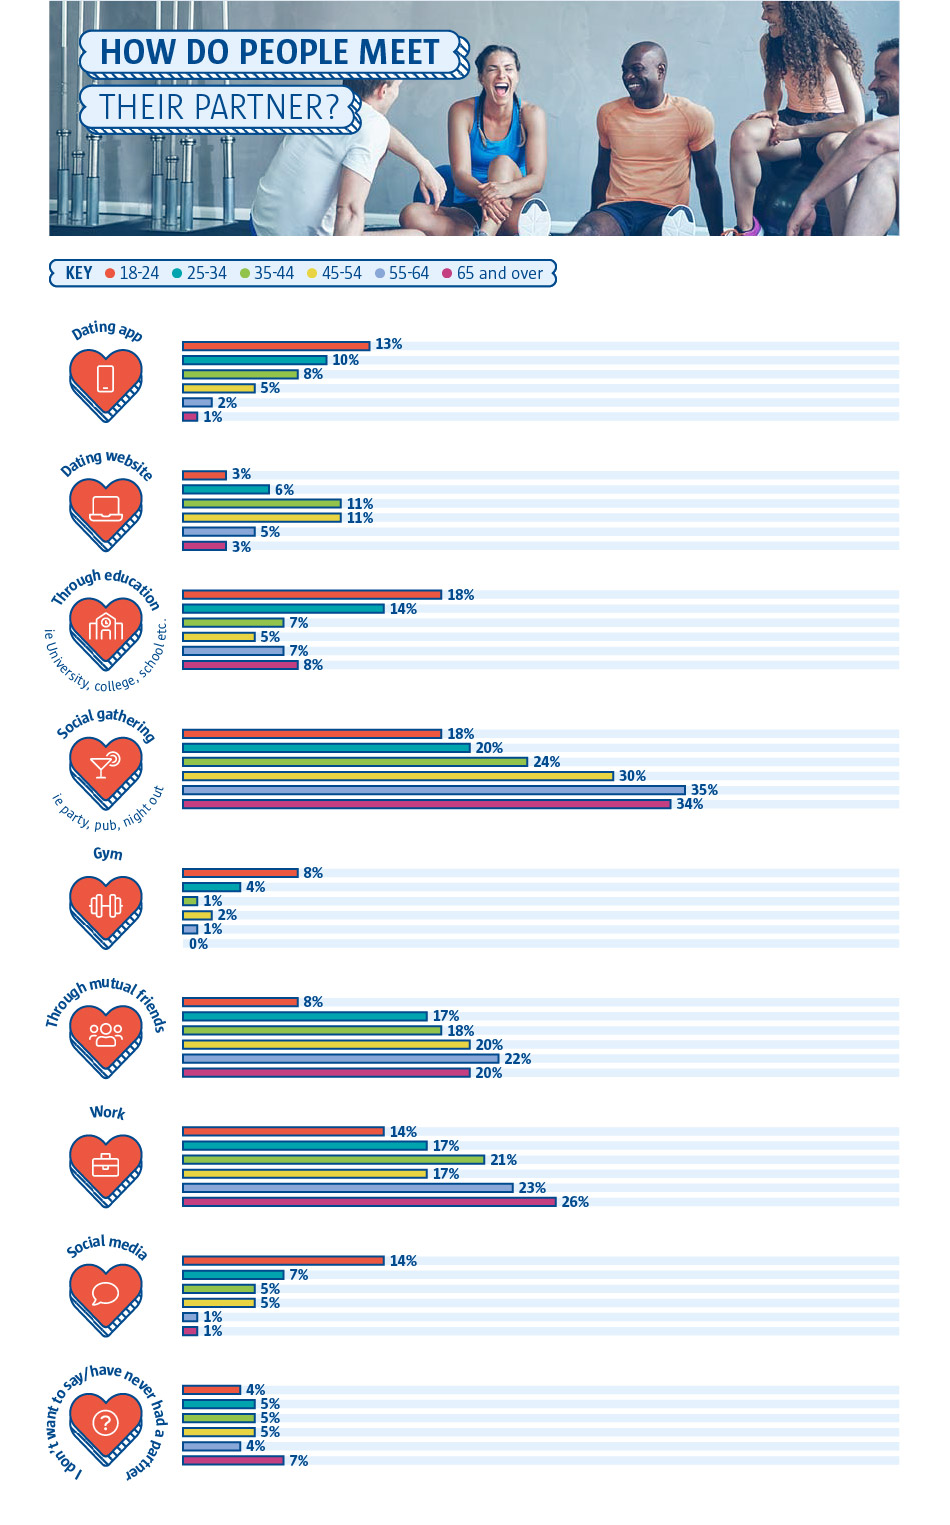 How do people meet their partner? (by age)